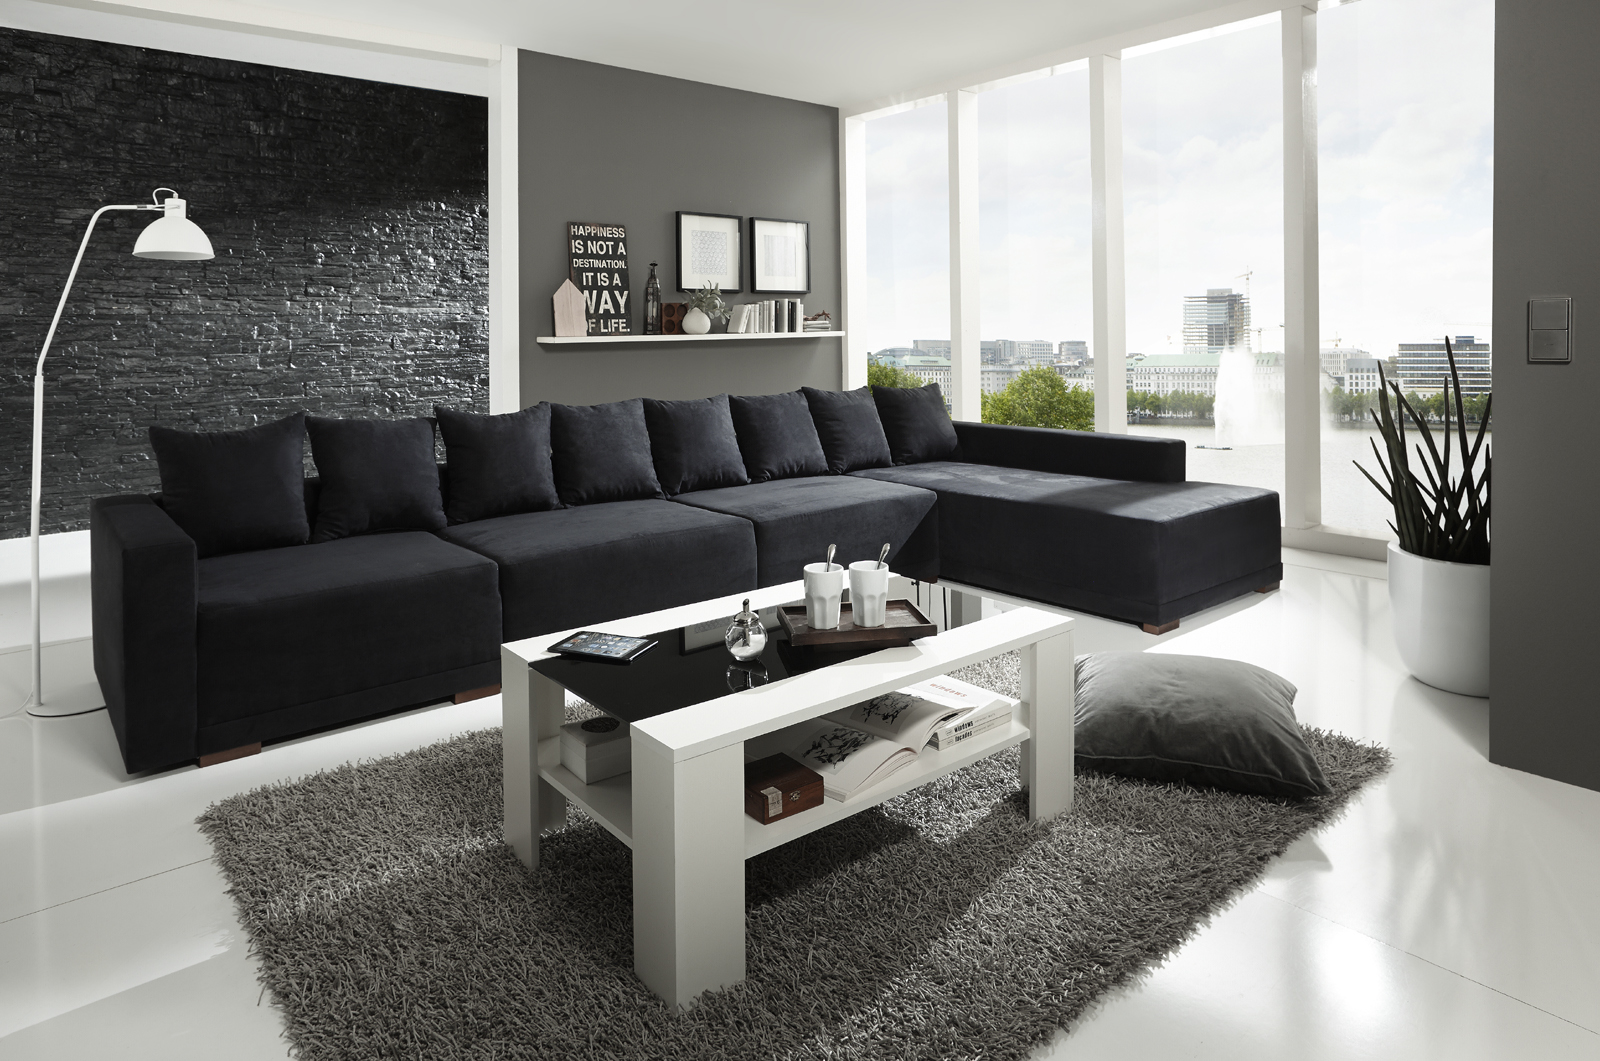 sofa landschaft sherry von wschillig als uform in with sofa landschaft free groes sofa zu. Black Bedroom Furniture Sets. Home Design Ideas